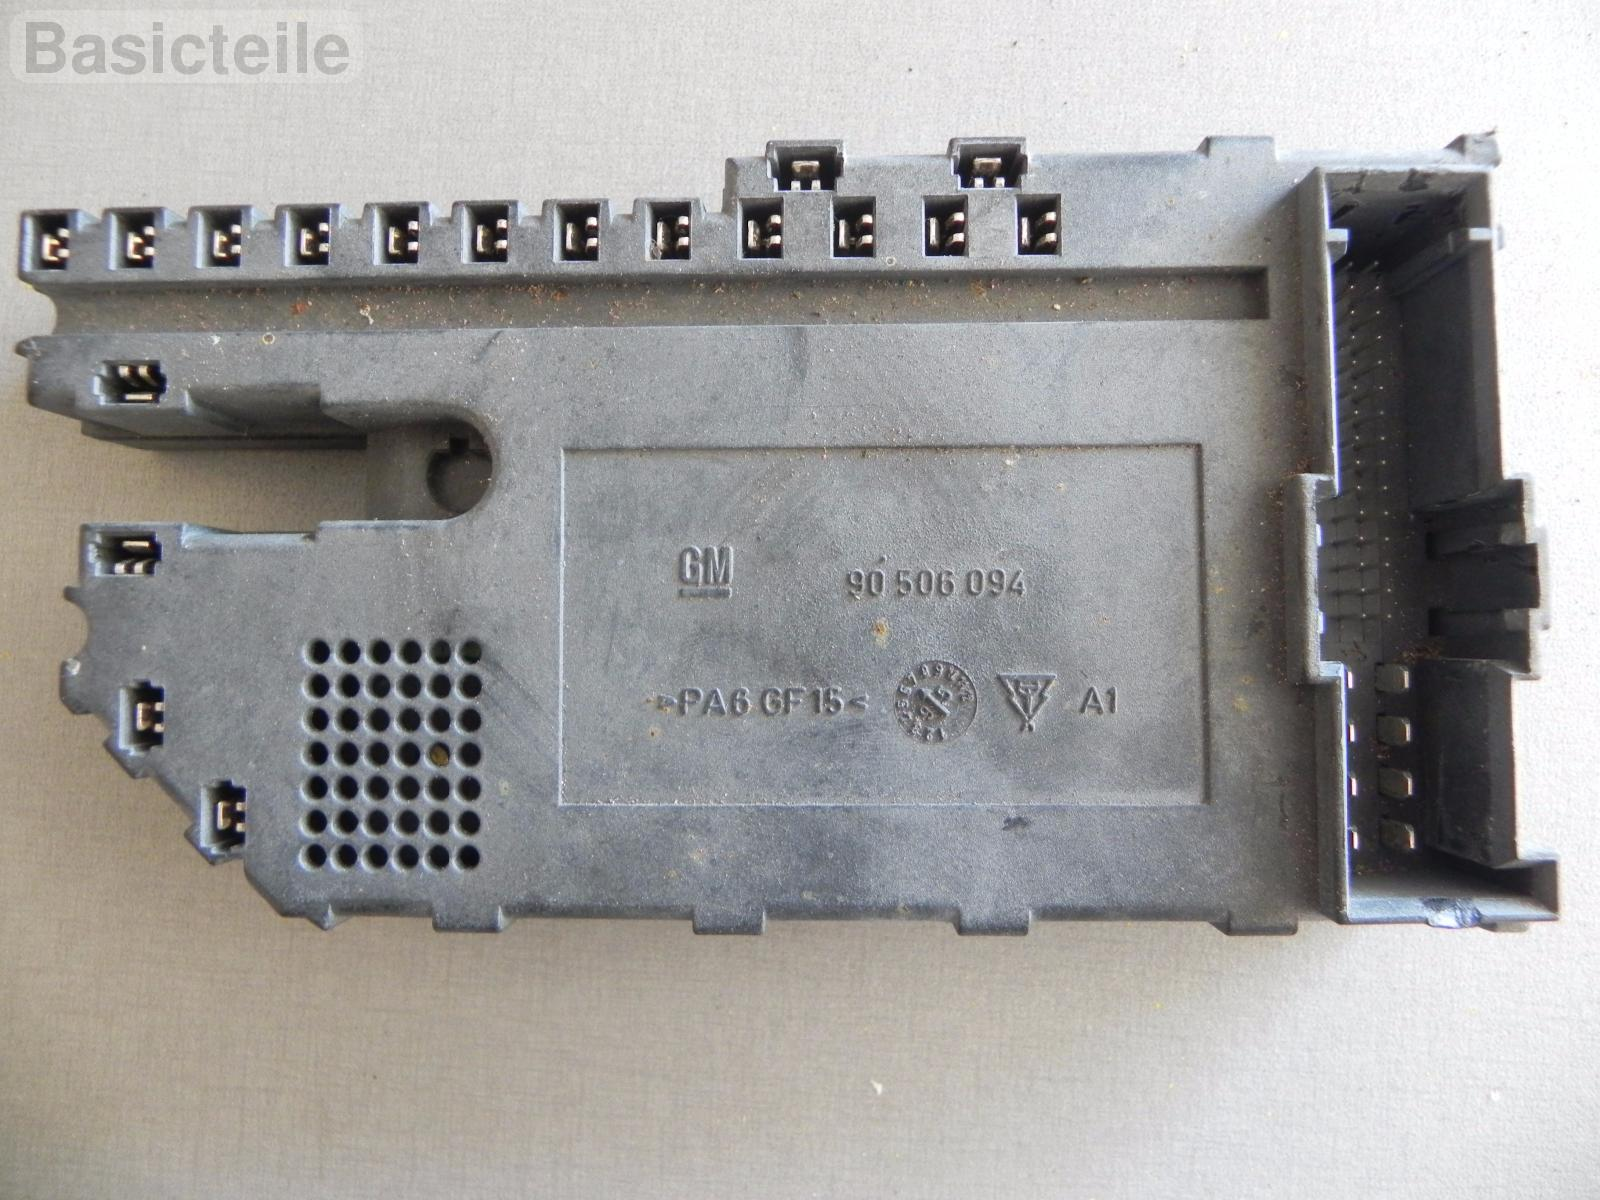 hight resolution of opel vauxhall vectra b fuse box multimeter 90506094 ebay opel ascona b opel vectra b fuse